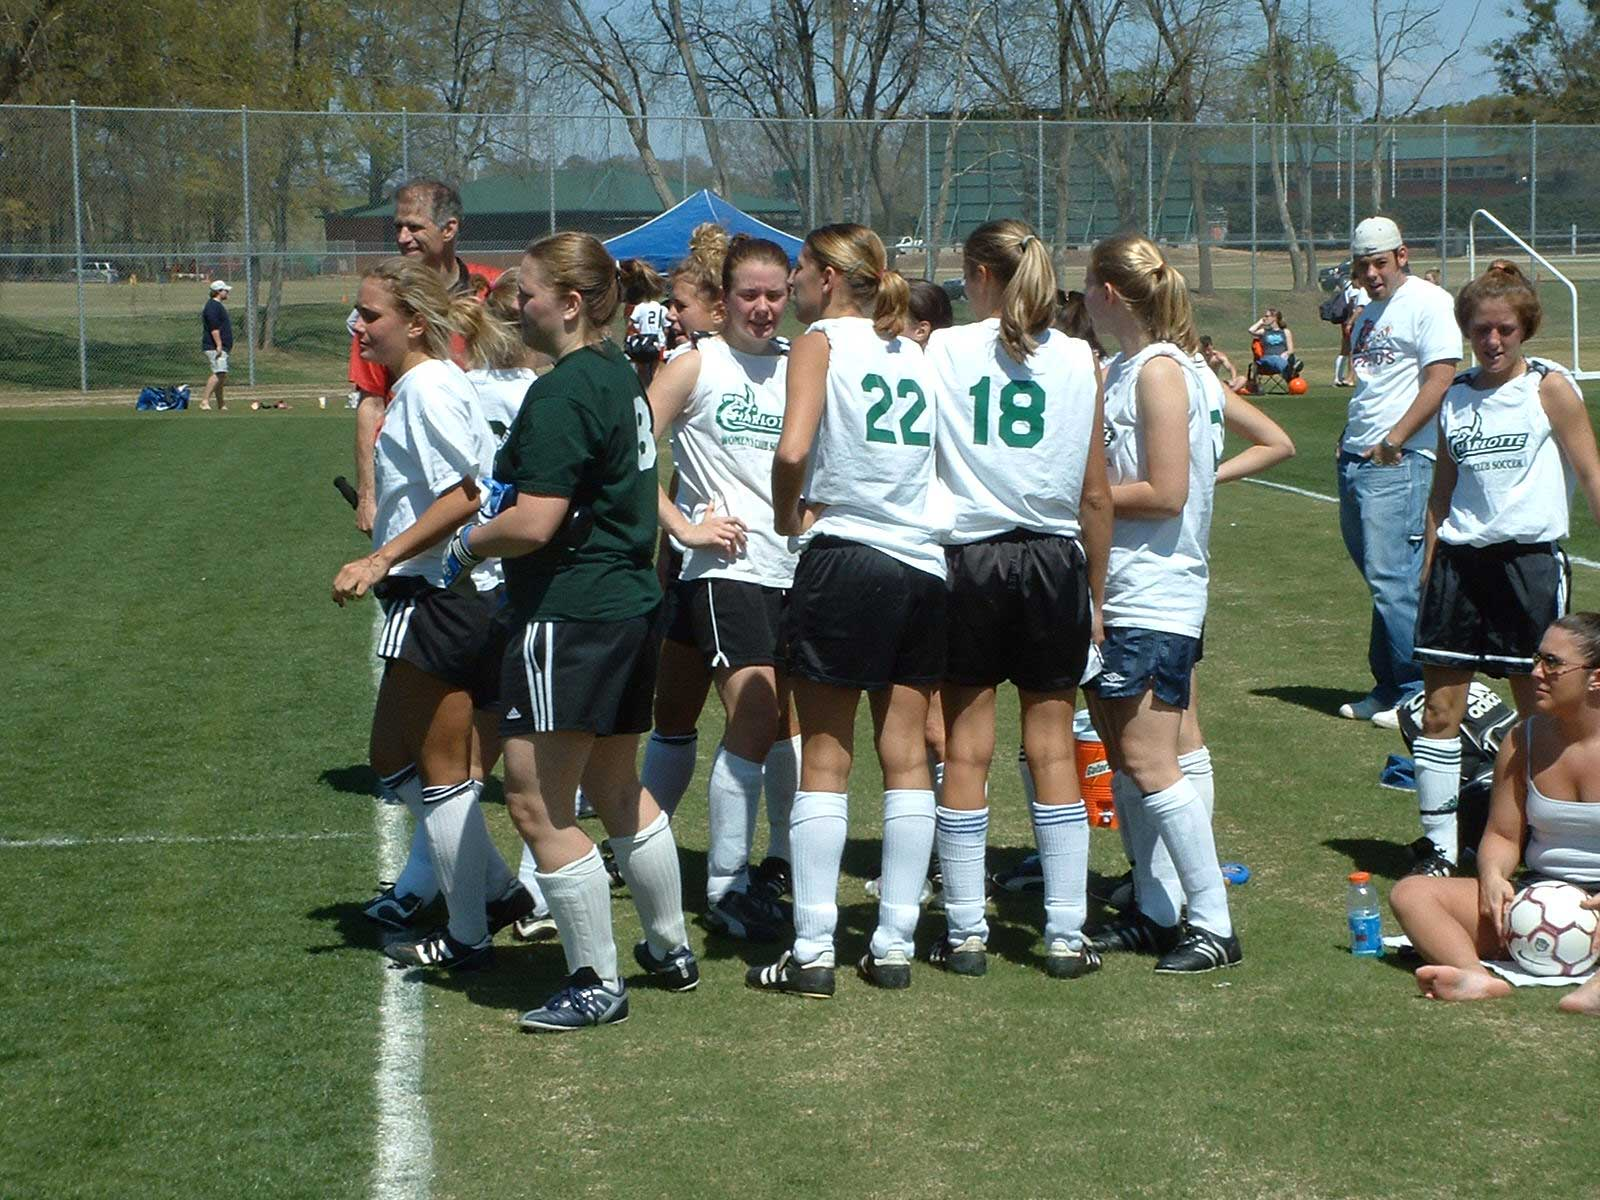 Clemson University Women's Club Soccer http://tk-jk.net/GTsoccer/blog/20032004/2004Springseason.html